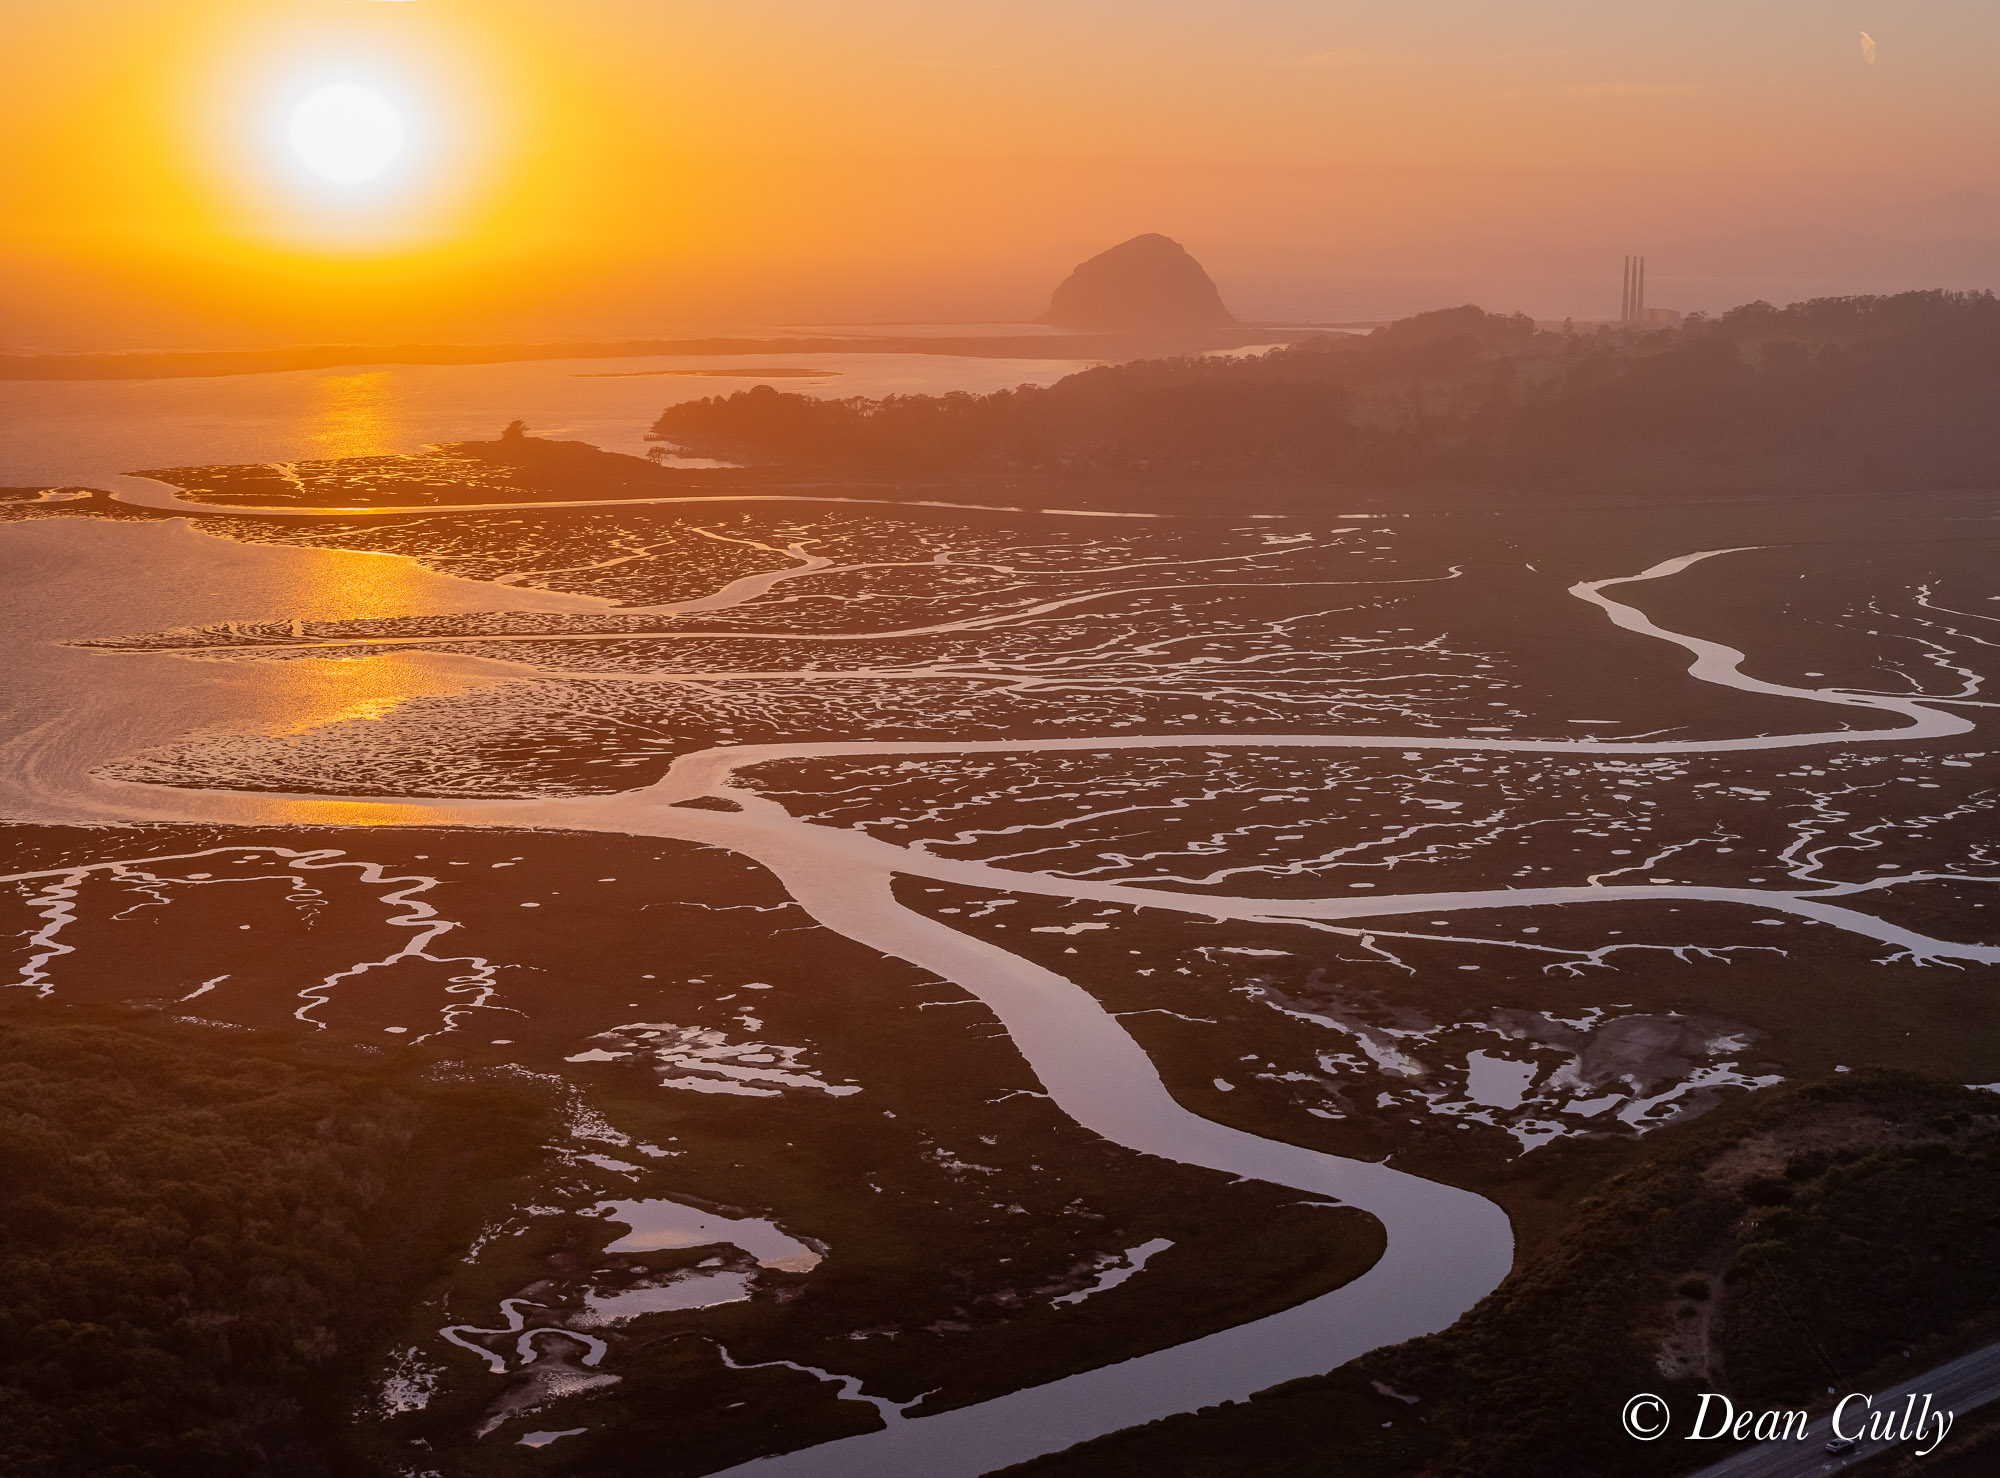 20190702_deancully_morro_bay_sunset_estuary_8960